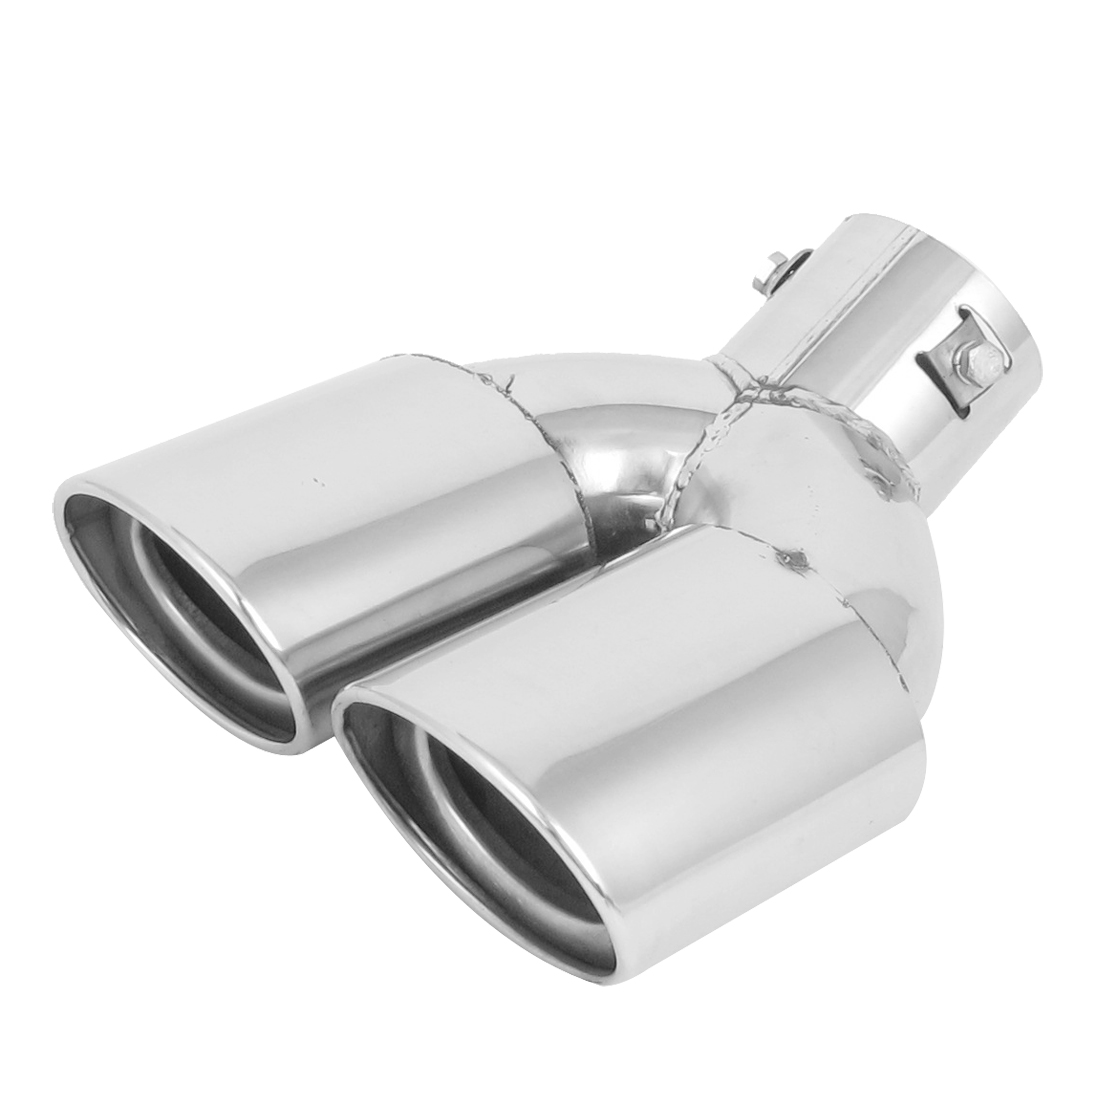 "Stainless Steel Double Outlet Car Muffler Tail Tip for 0.94""-1.8"" OD Exhaust Pipe"